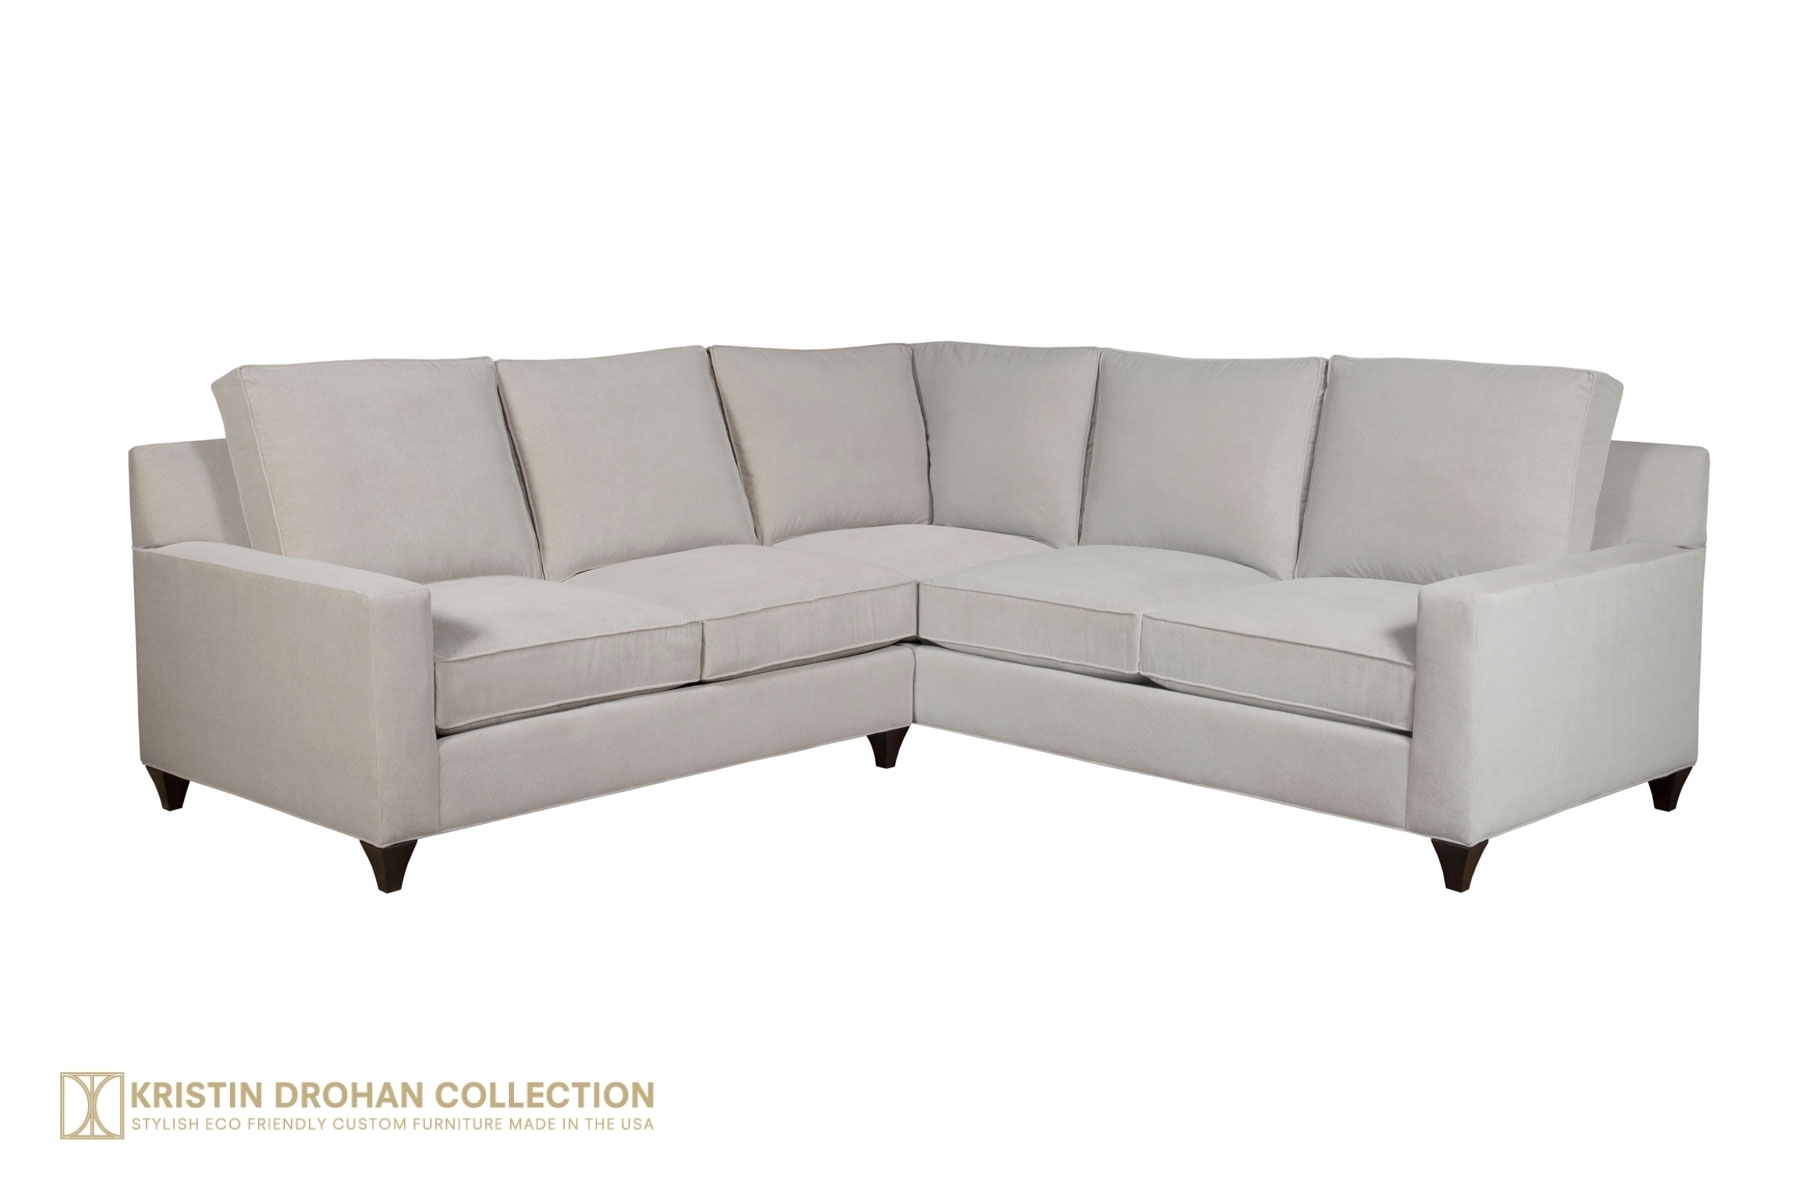 Loree Sectional - The Kristin Drohan Collection pertaining to Kristen Silver Grey 6 Piece Power Reclining Sectionals (Image 16 of 30)